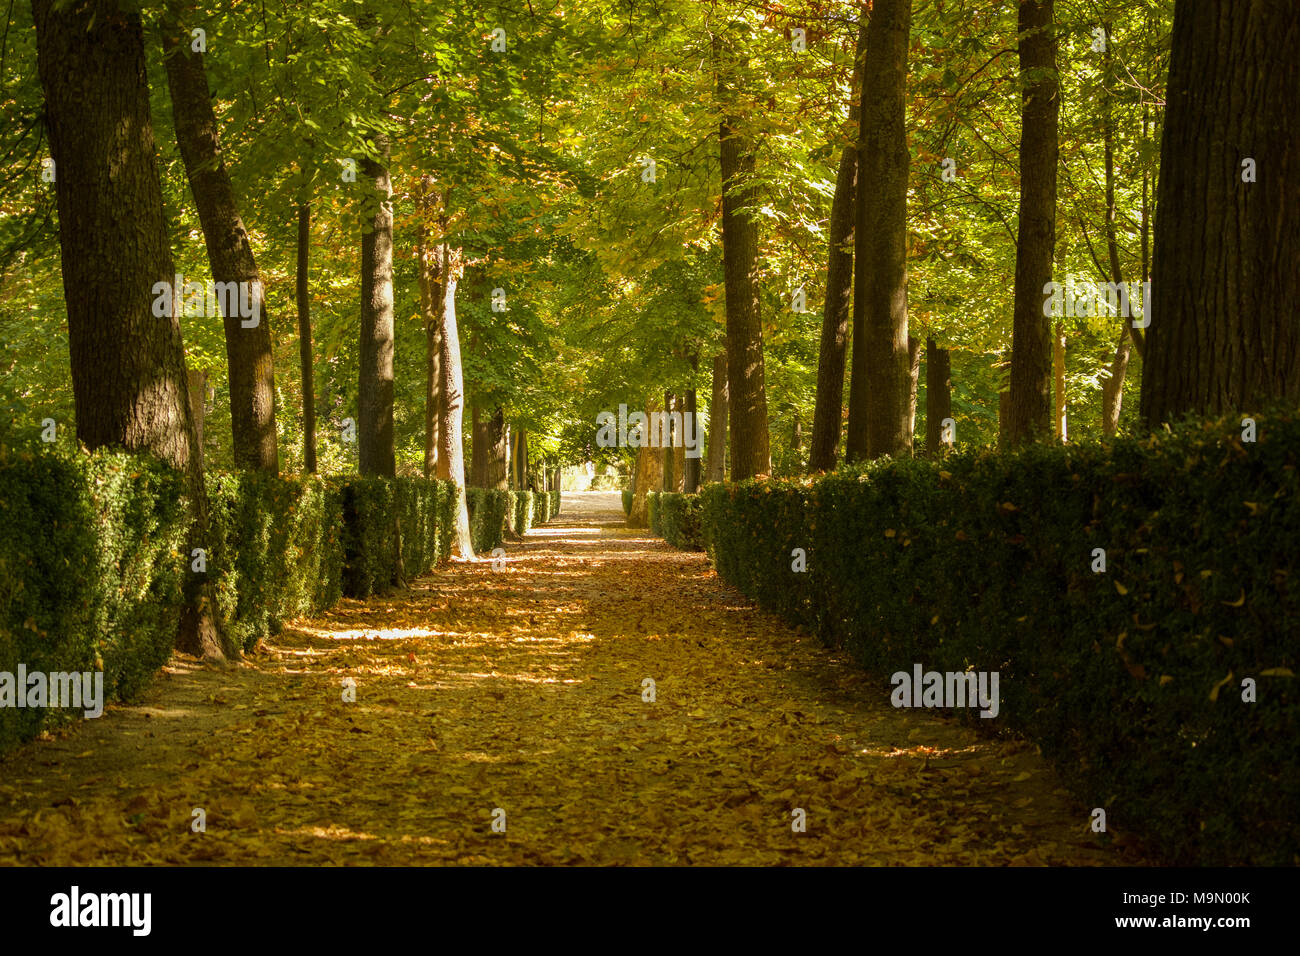 View down an untouched pathway covered in fallen autumn leaves in the wooded gardens of the Palace of Aranjuez, Spain Stock Photo